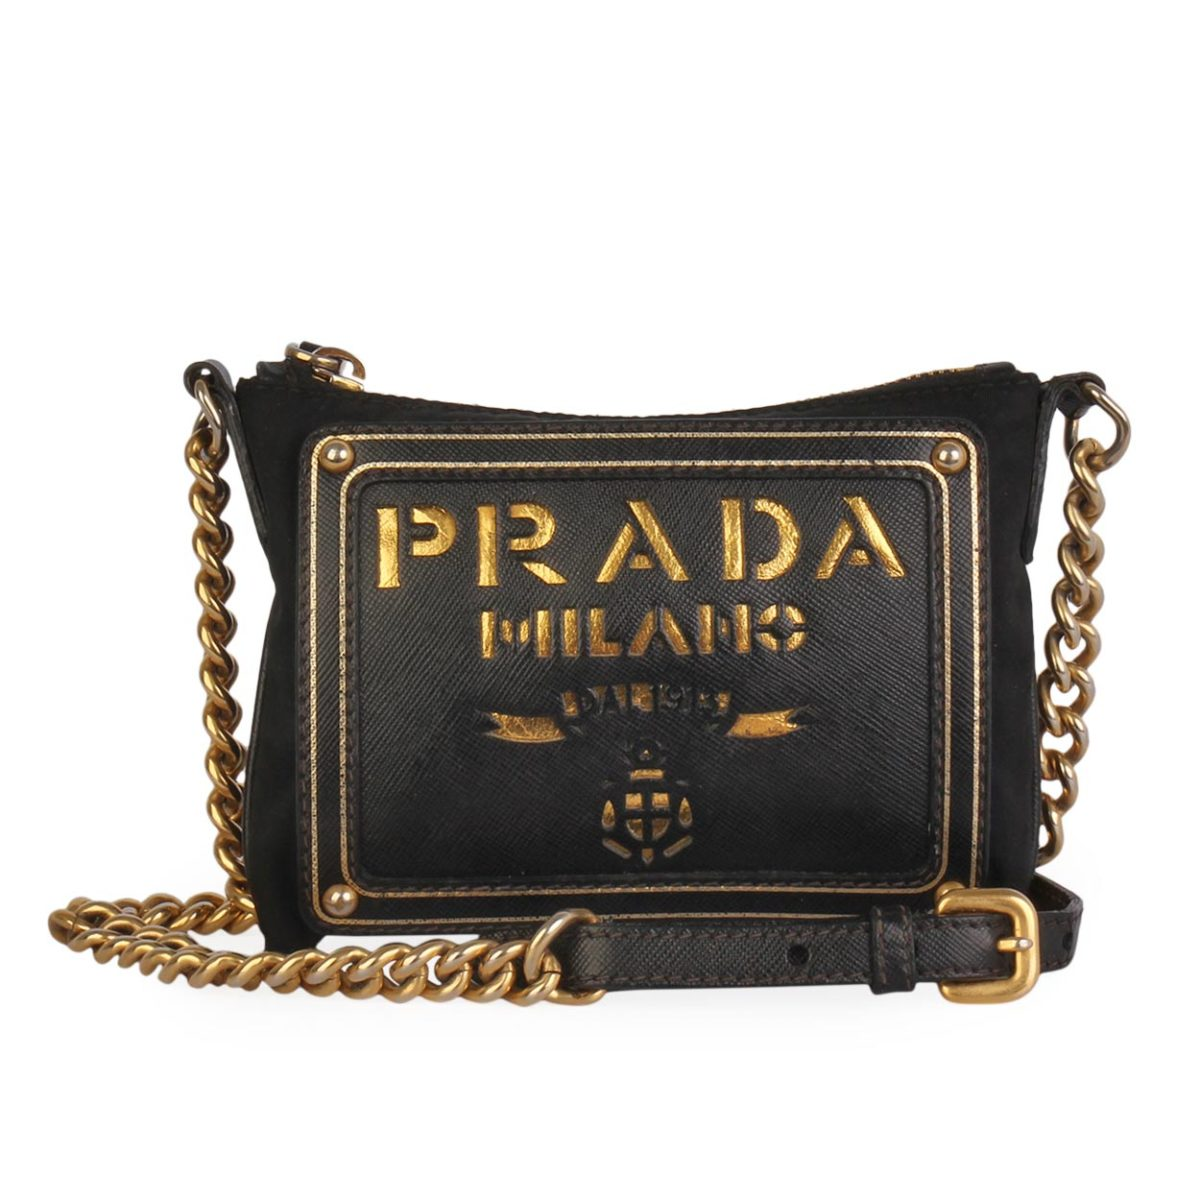 3d0cb76f8c0a sweden prada saffiano leather nylon cross body bag black luxity add7b d052d